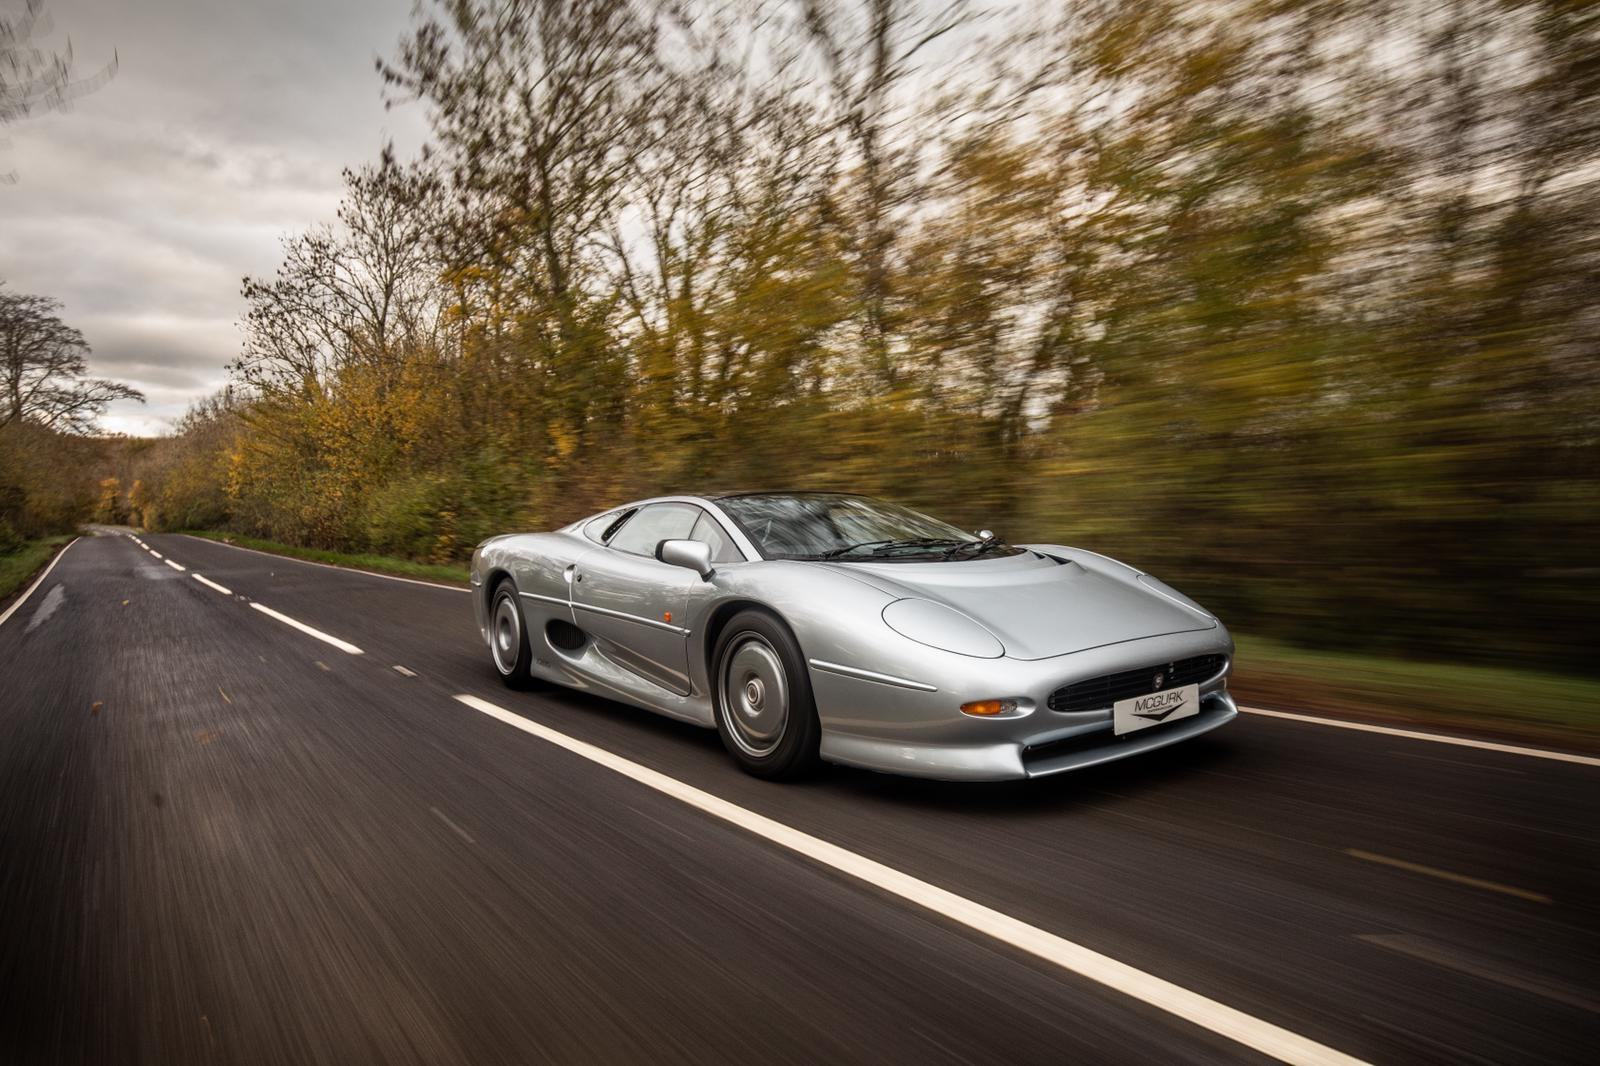 Jaguar XJ220 for sale